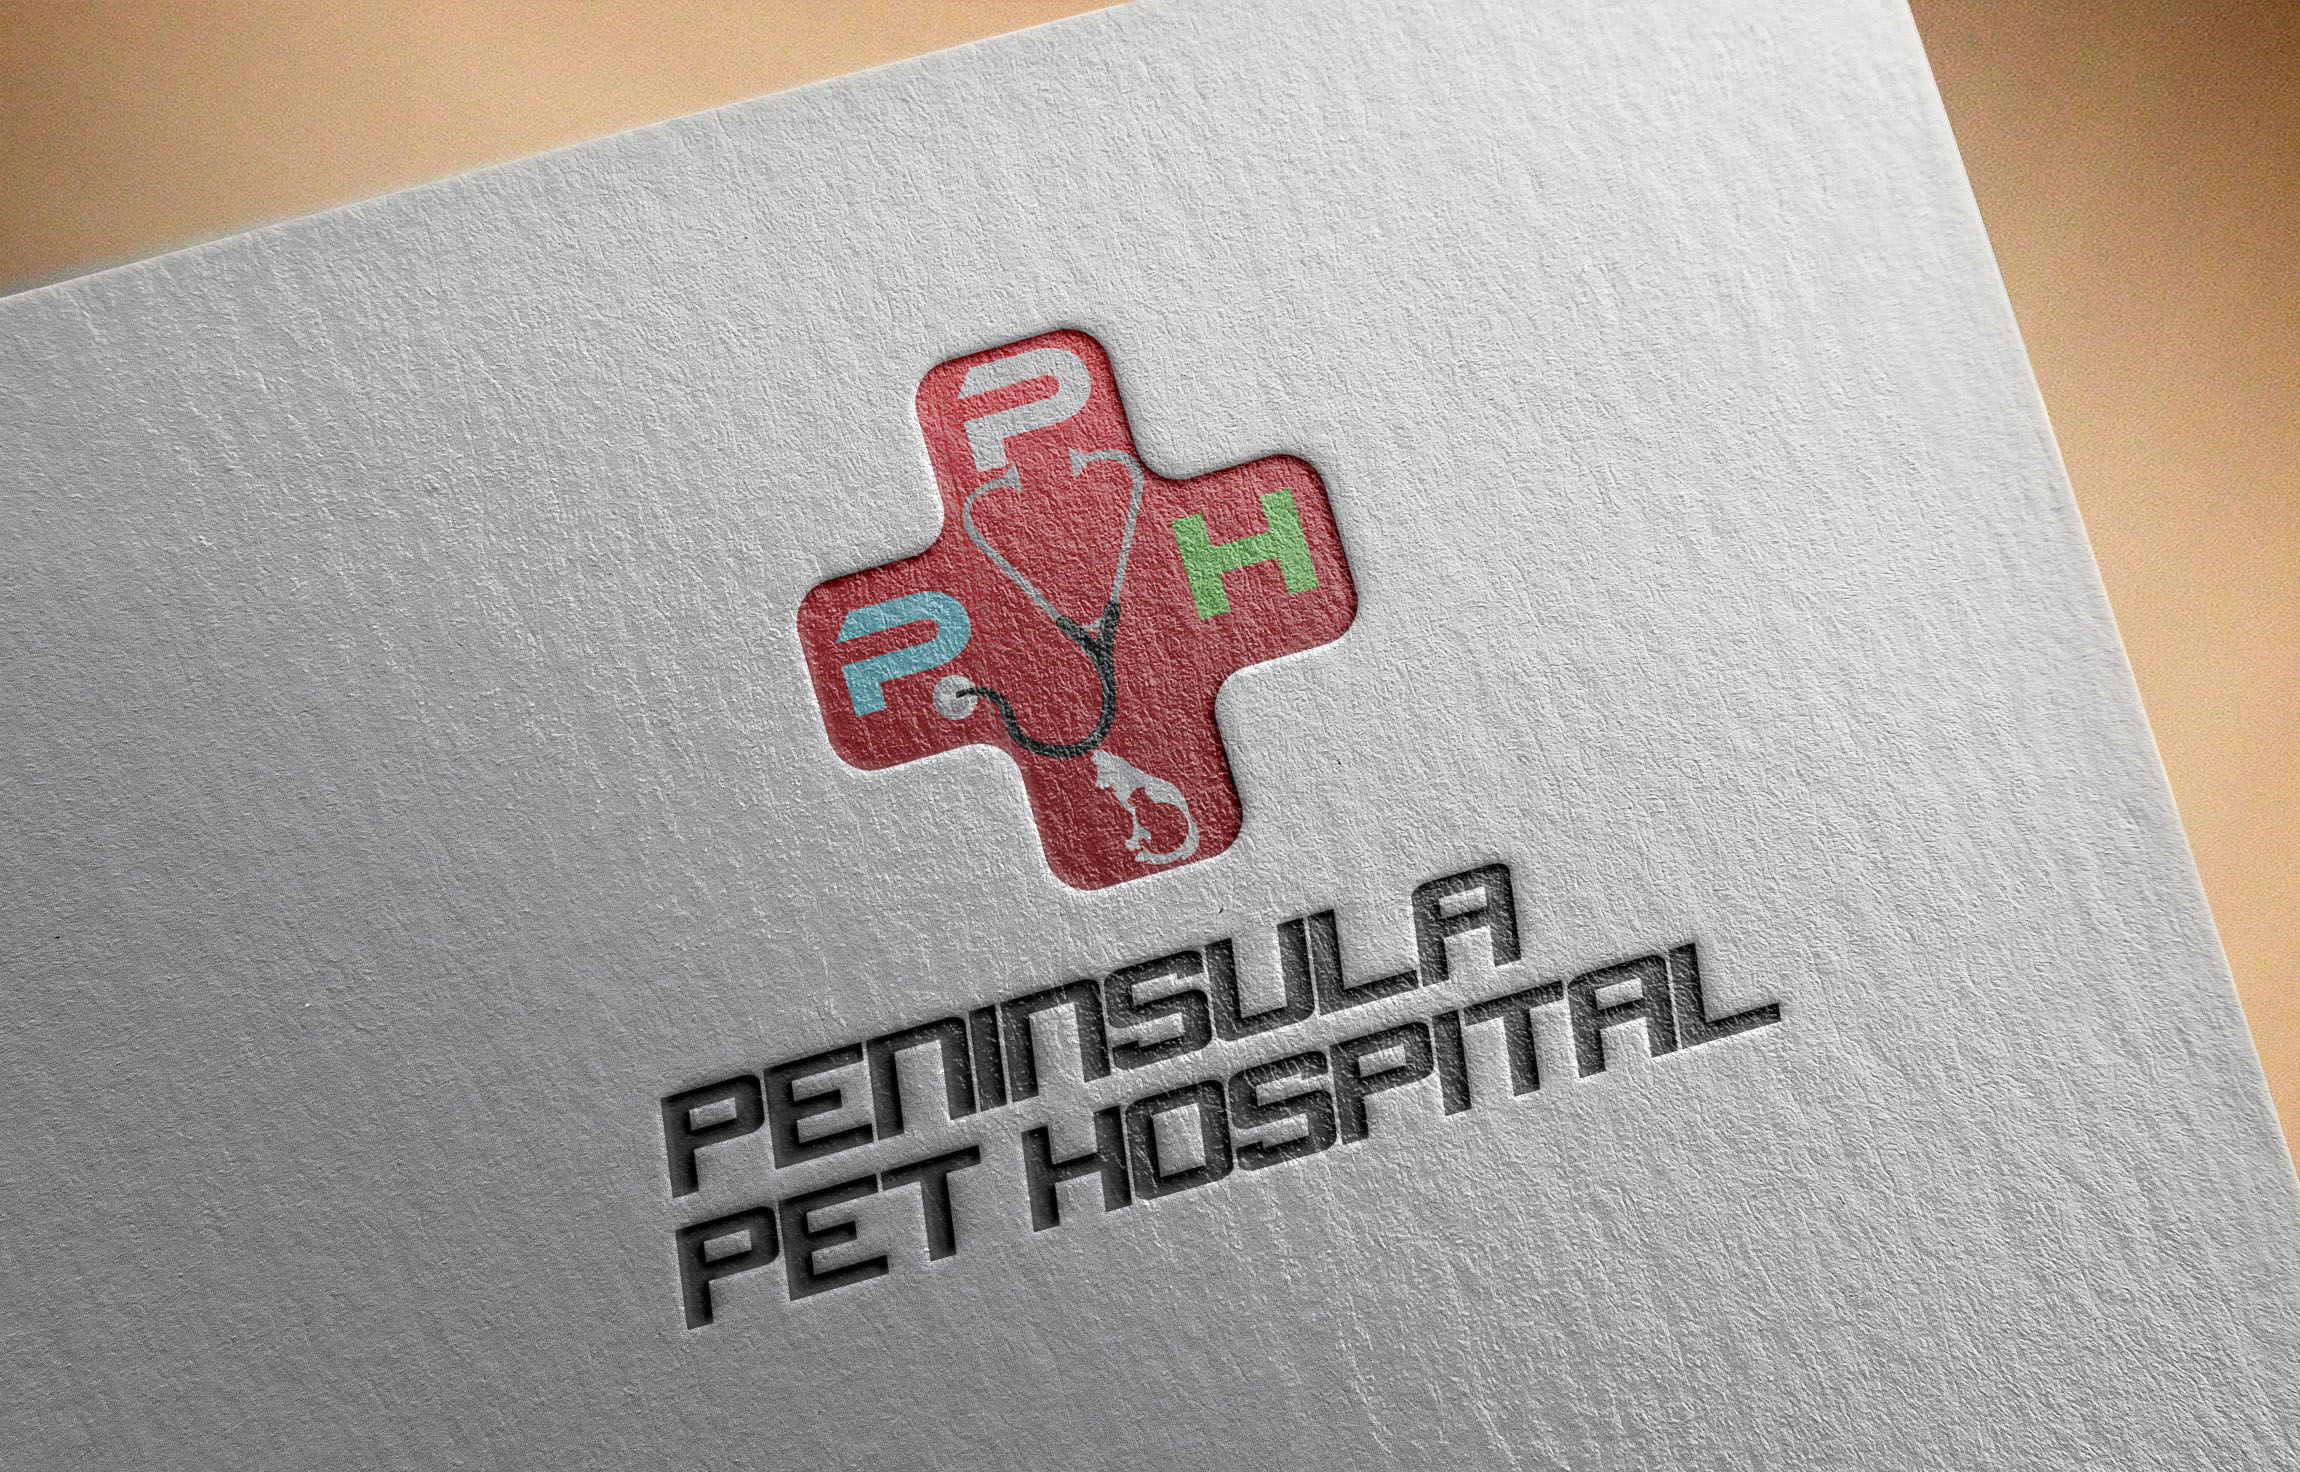 Logo Design by Umair ahmed Iqbal - Entry No. 47 in the Logo Design Contest Creative Logo Design for Peninsula Pet Hospital.